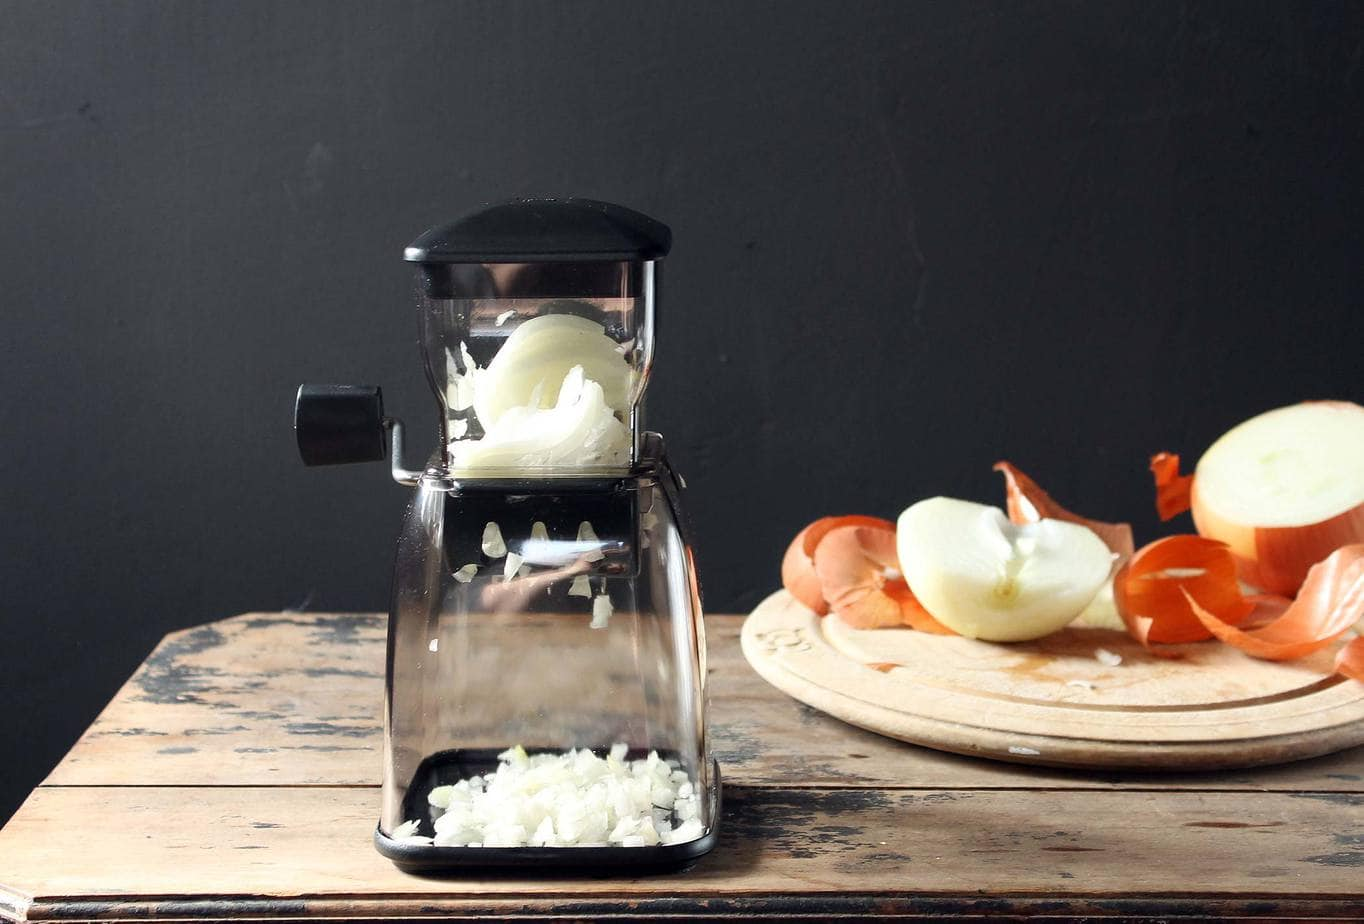 Gefu Cubico Onion Chopper | Veggie Desserts Blog